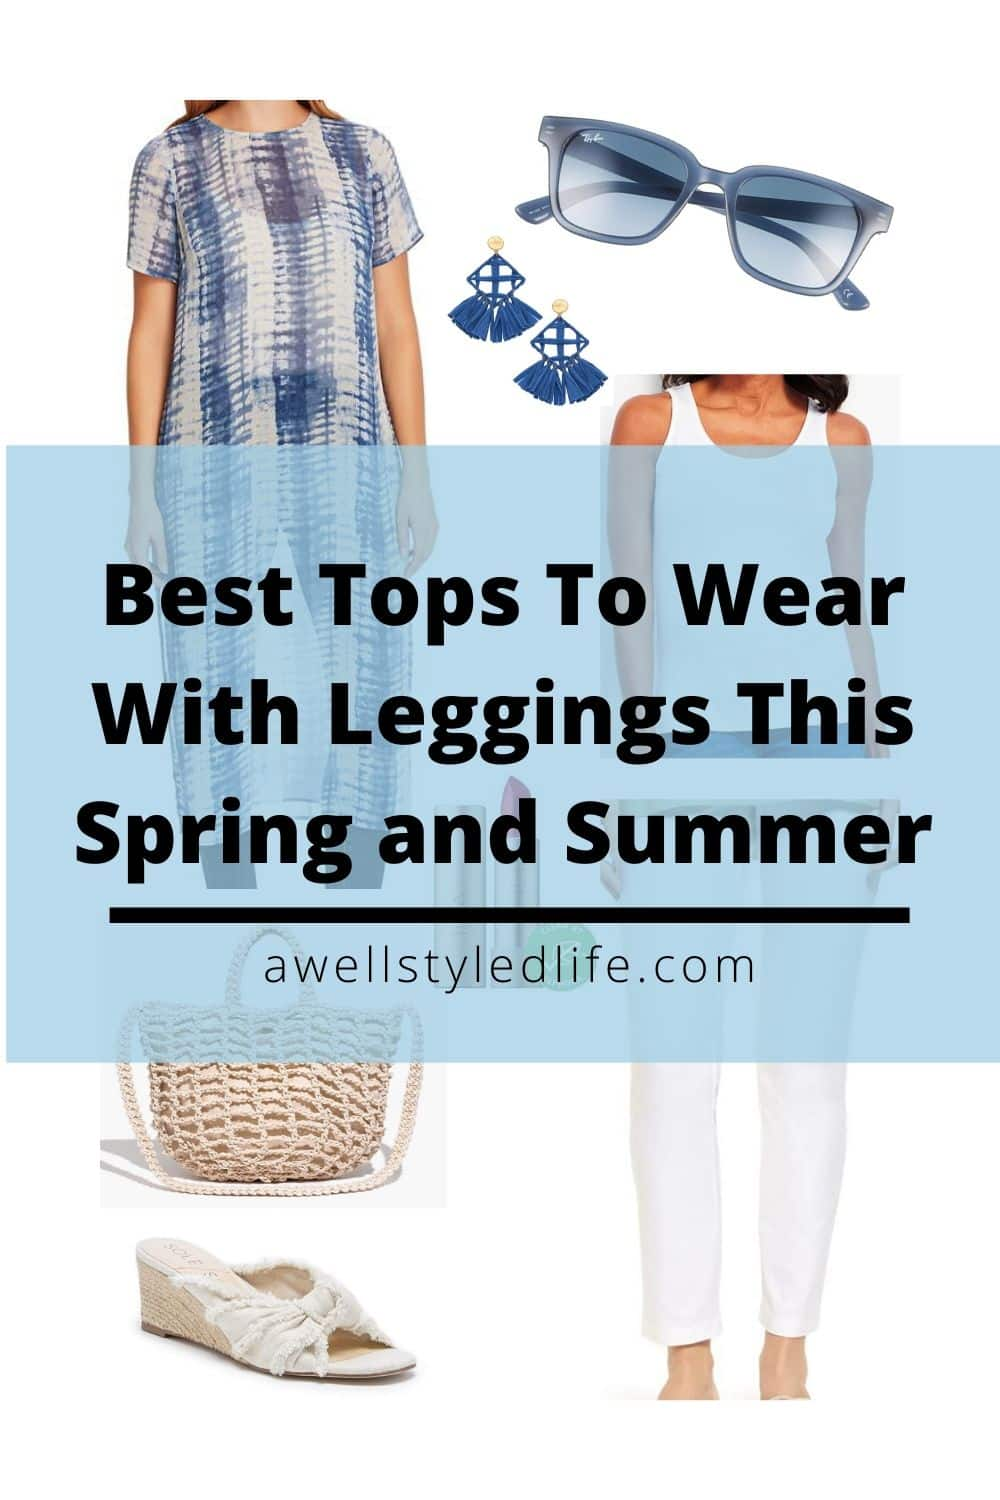 Tops To Wear With Leggings This Spring and Summer